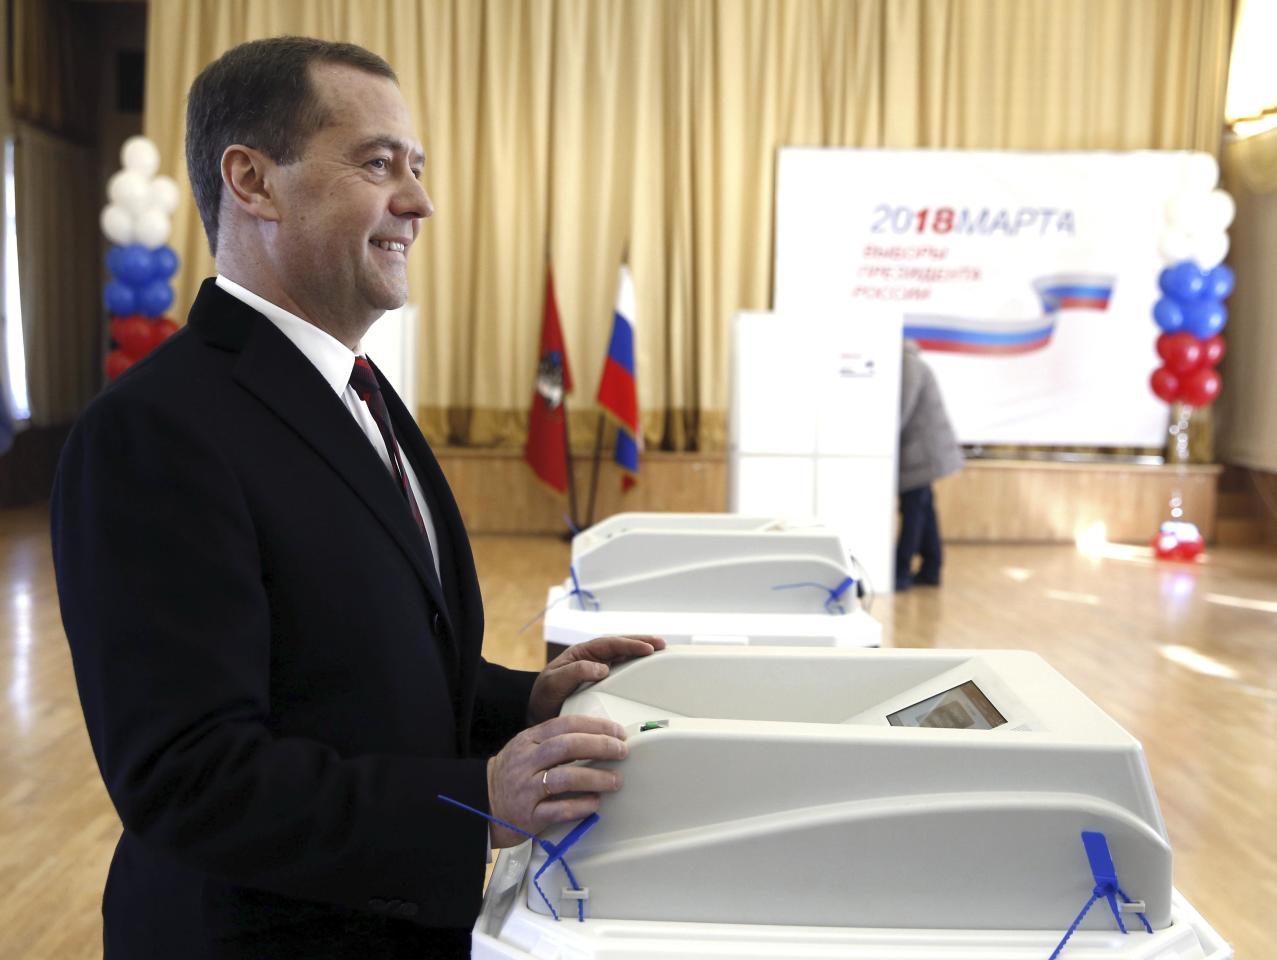 Russian Prime Minister Dmitry Medvedev visits a polling station during the presidential election in Moscow, Russia March 18, 2018. Sputnik/Dmitry Astakhov/Pool via REUTERS  ATTENTION EDITORS - THIS IMAGE WAS PROVIDED BY A THIRD PARTY.